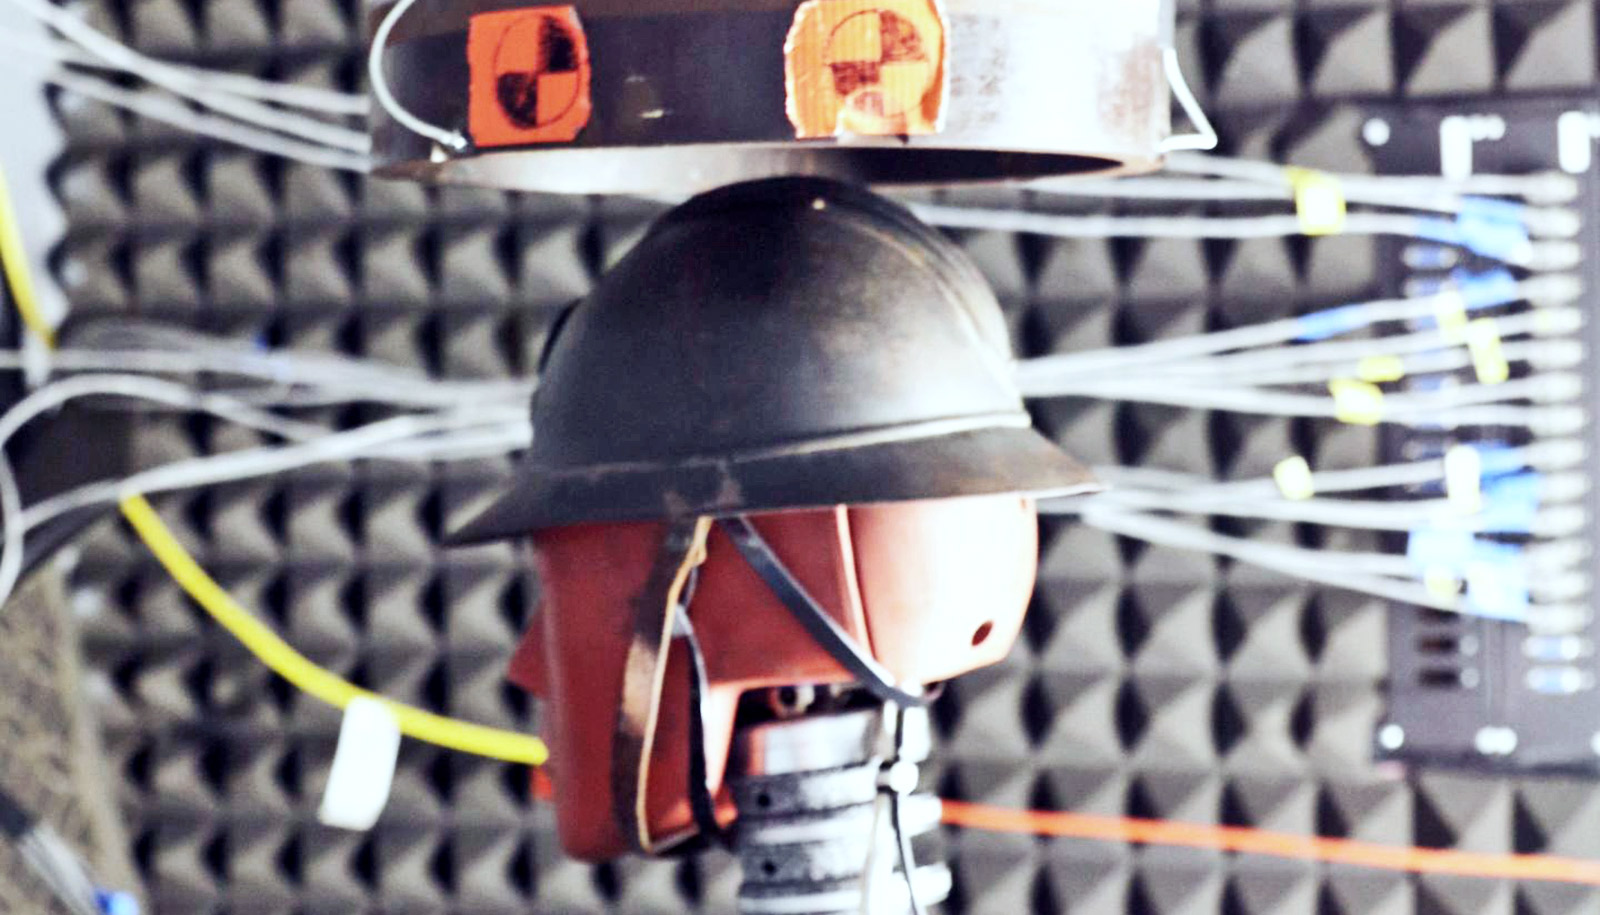 WWI helmet beats modern ones at shock wave protection - Futurity